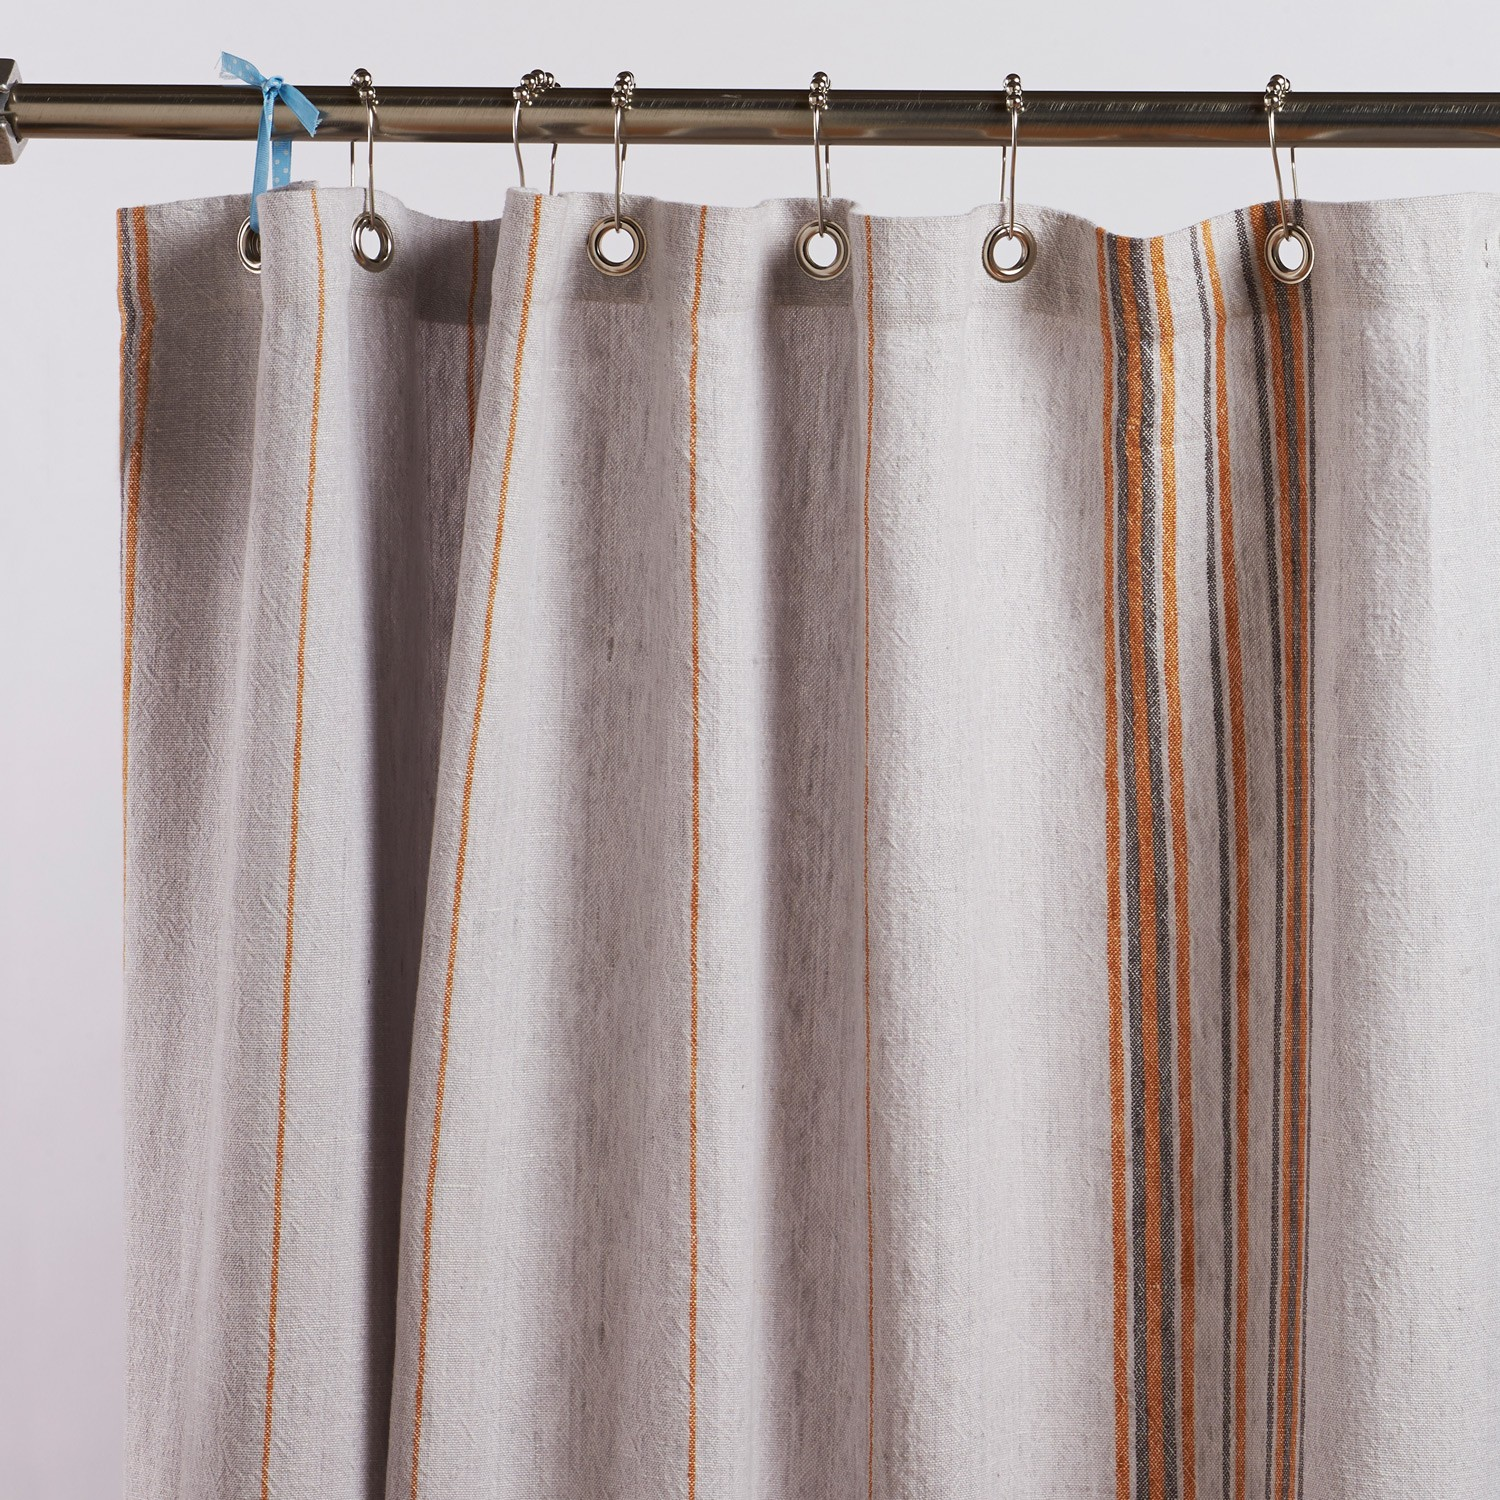 How To Install A Shower Curtain Rod Ylighting Ideas